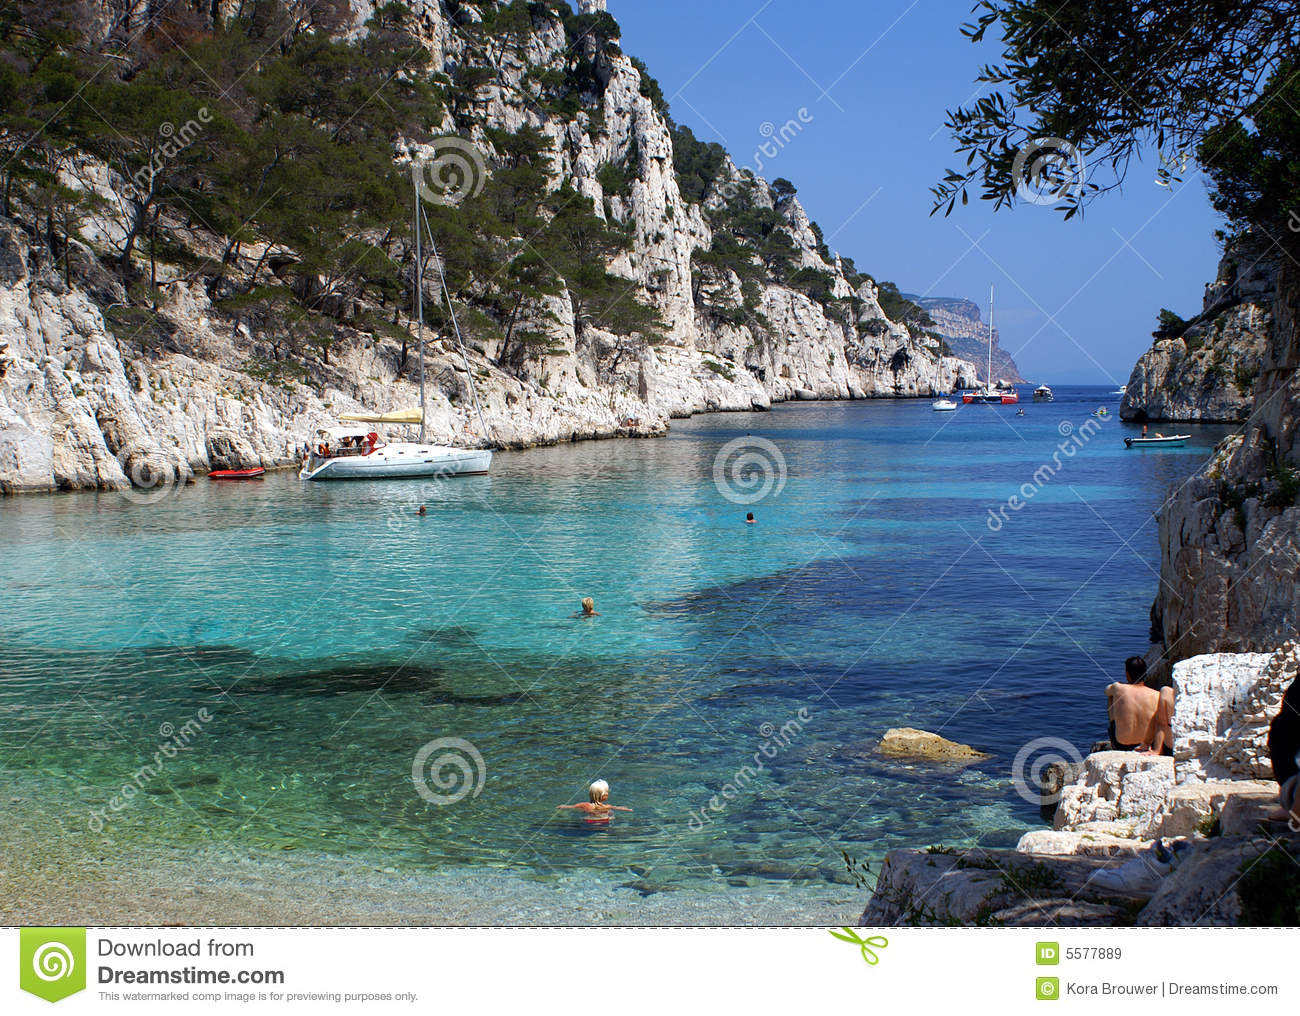 Calanque clipart #15, Download drawings